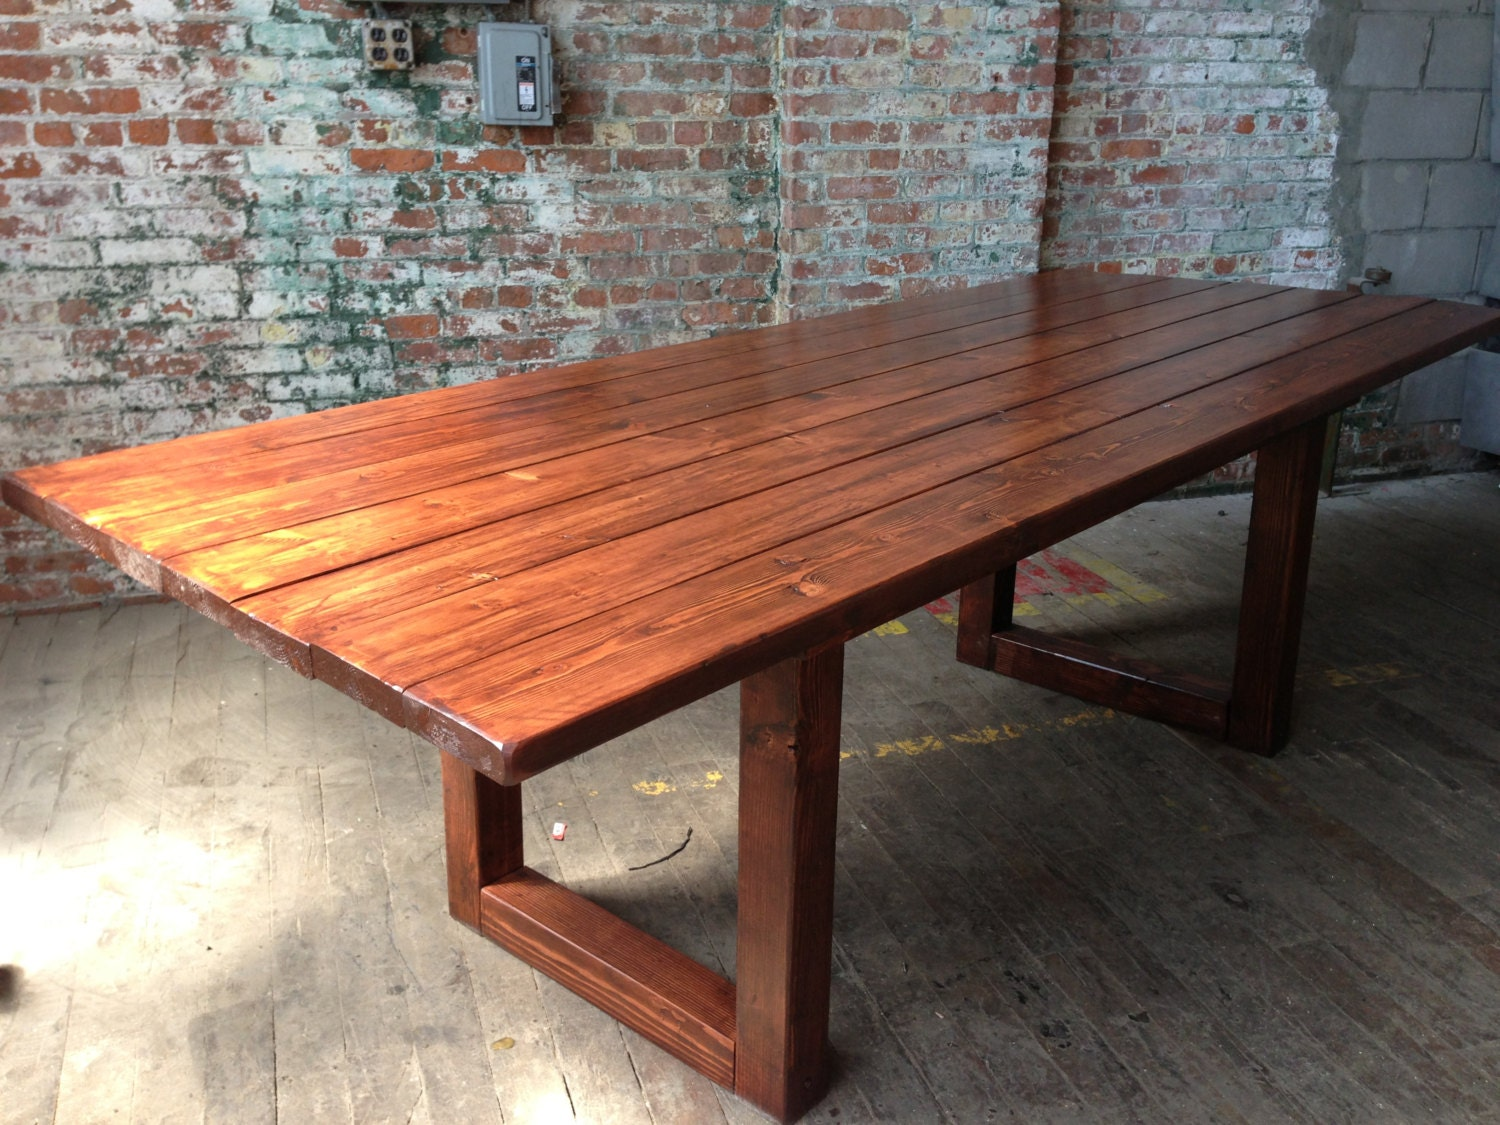 Rustic wood dining conference table Rustic wood dining table